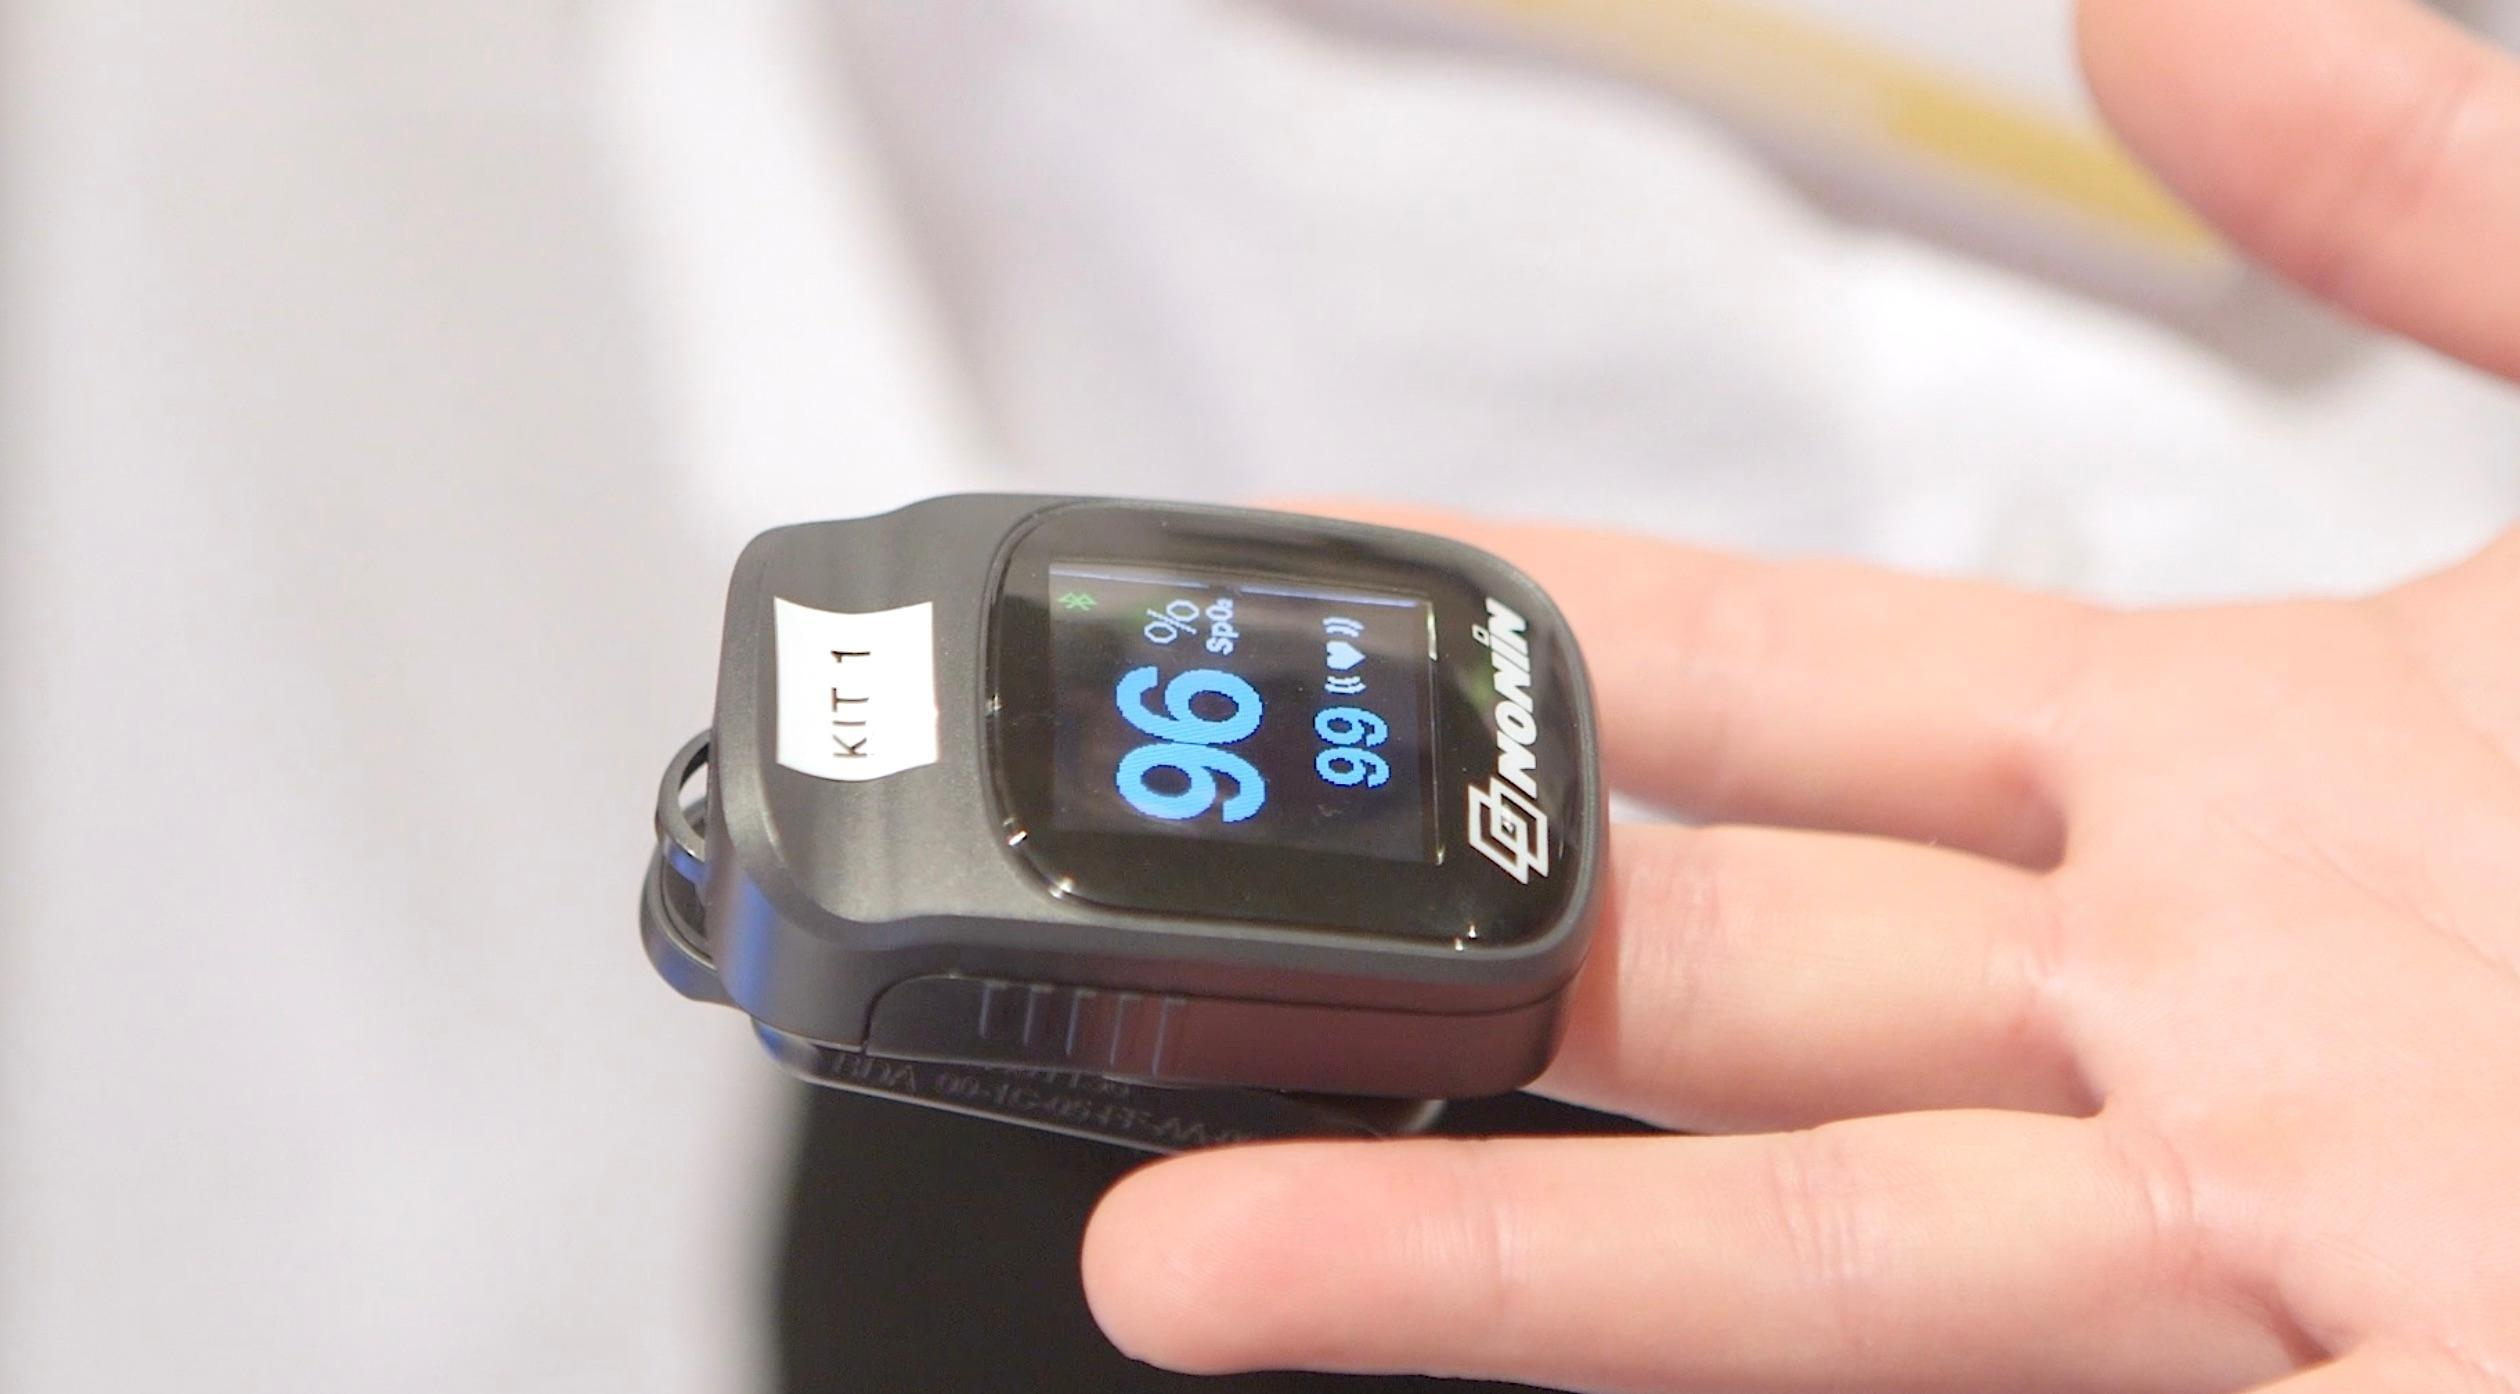 Heal launches Wellbe so doctors can always track your vitals